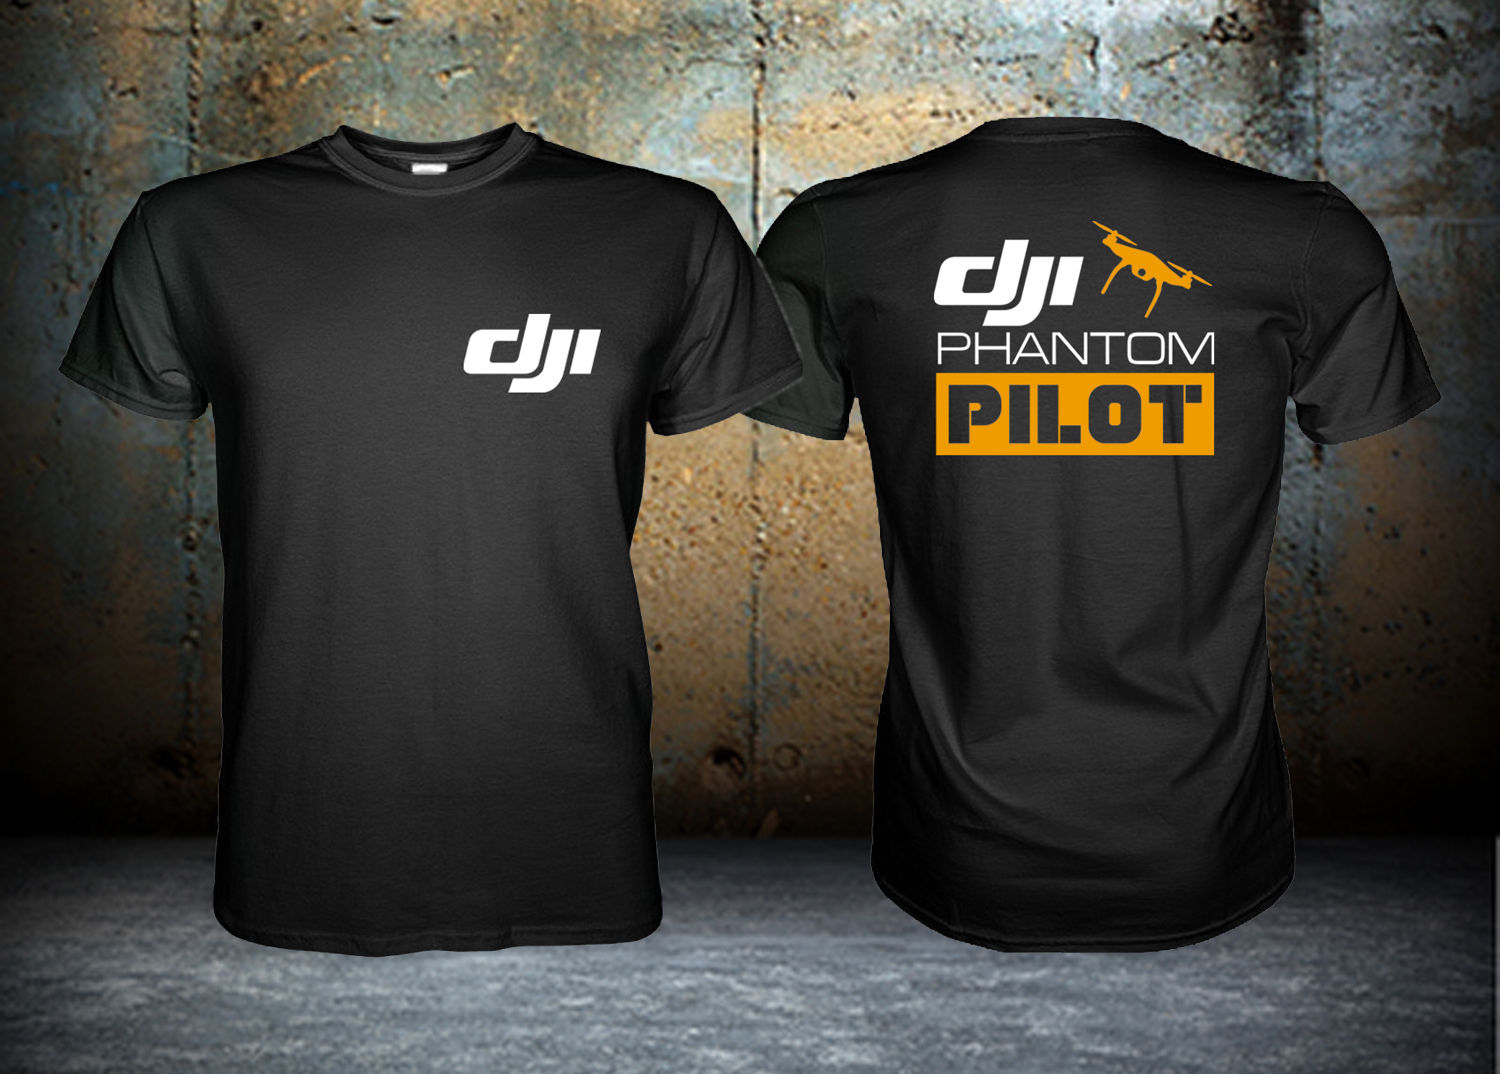 88c0f416d6 Worldwide delivery dji t shirt in NaBaRa Online